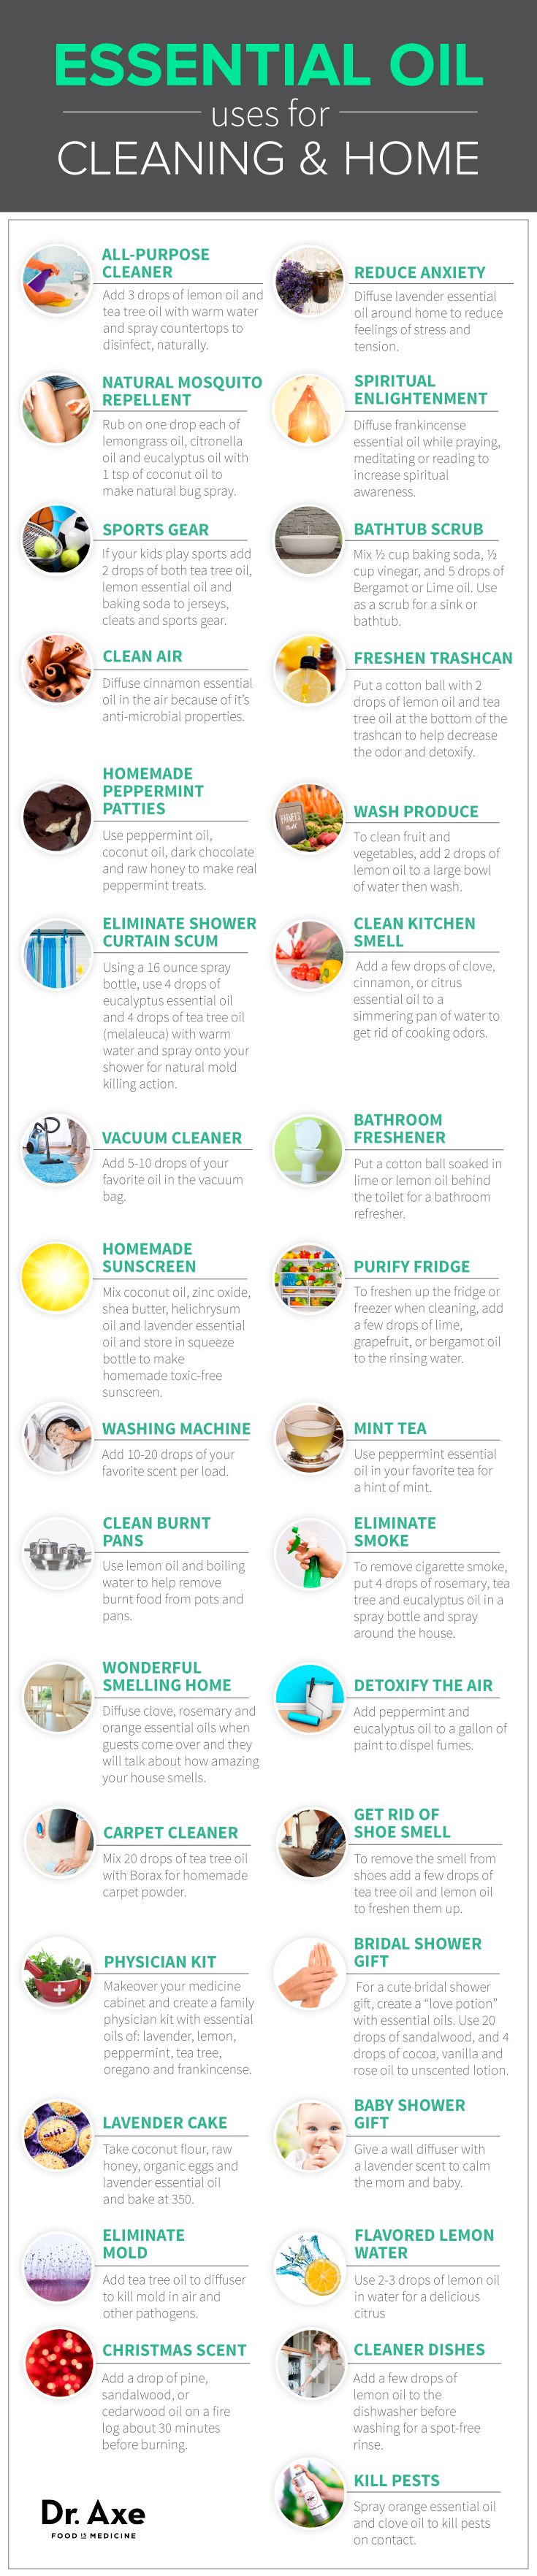 Top Pinned essential oils for cleaning and around the home.